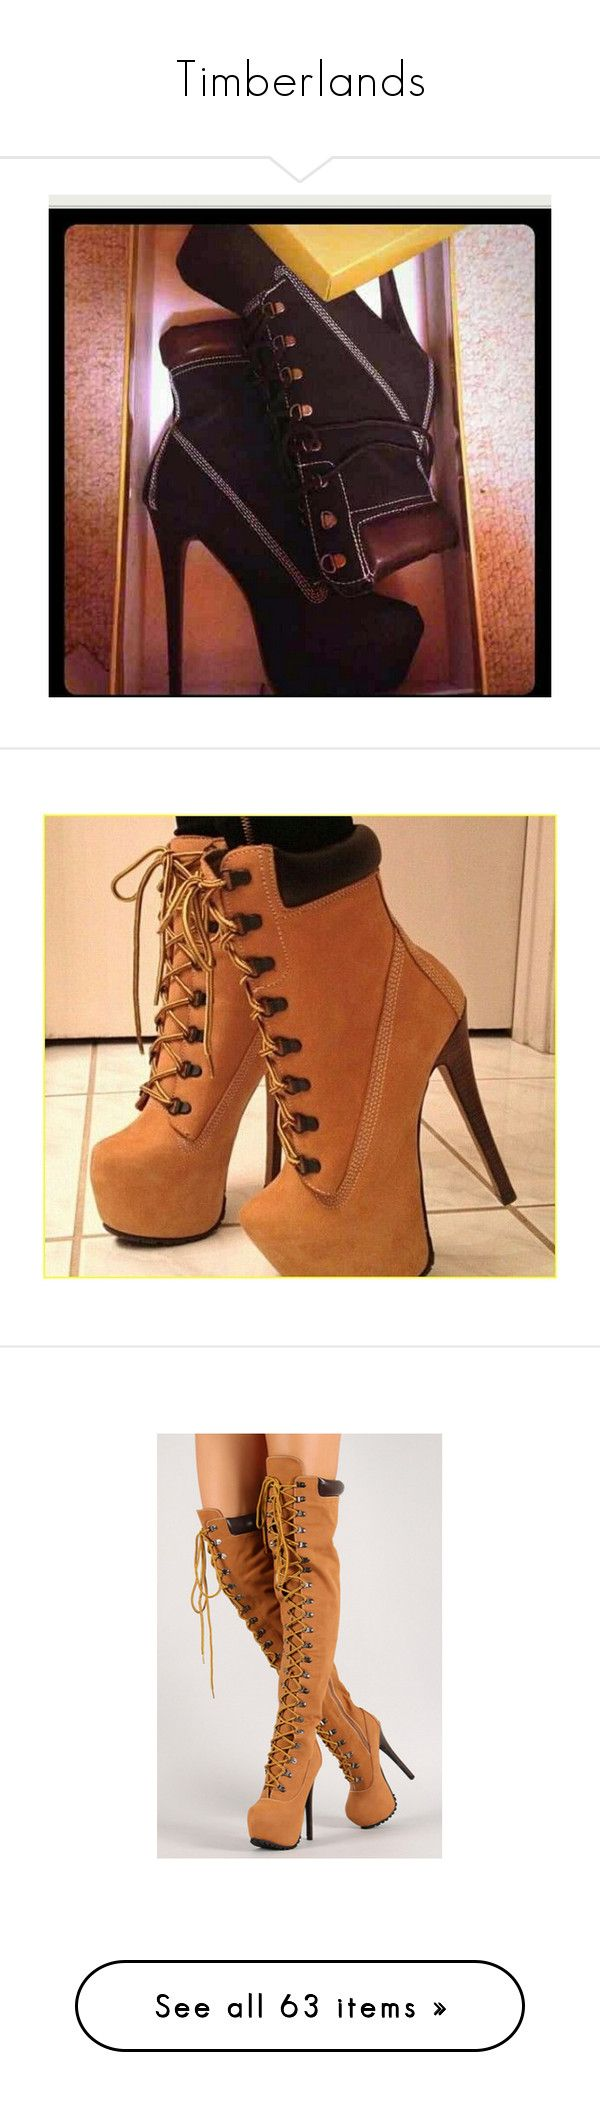 """""""Timberlands"""" by adorablequeen ❤ liked on Polyvore featuring shoes, sneakers, timberland shoes, timberland trainers, timberland sneakers, timberland footwear, high heeled footwear, high heel boots, high heel shoes and boots"""